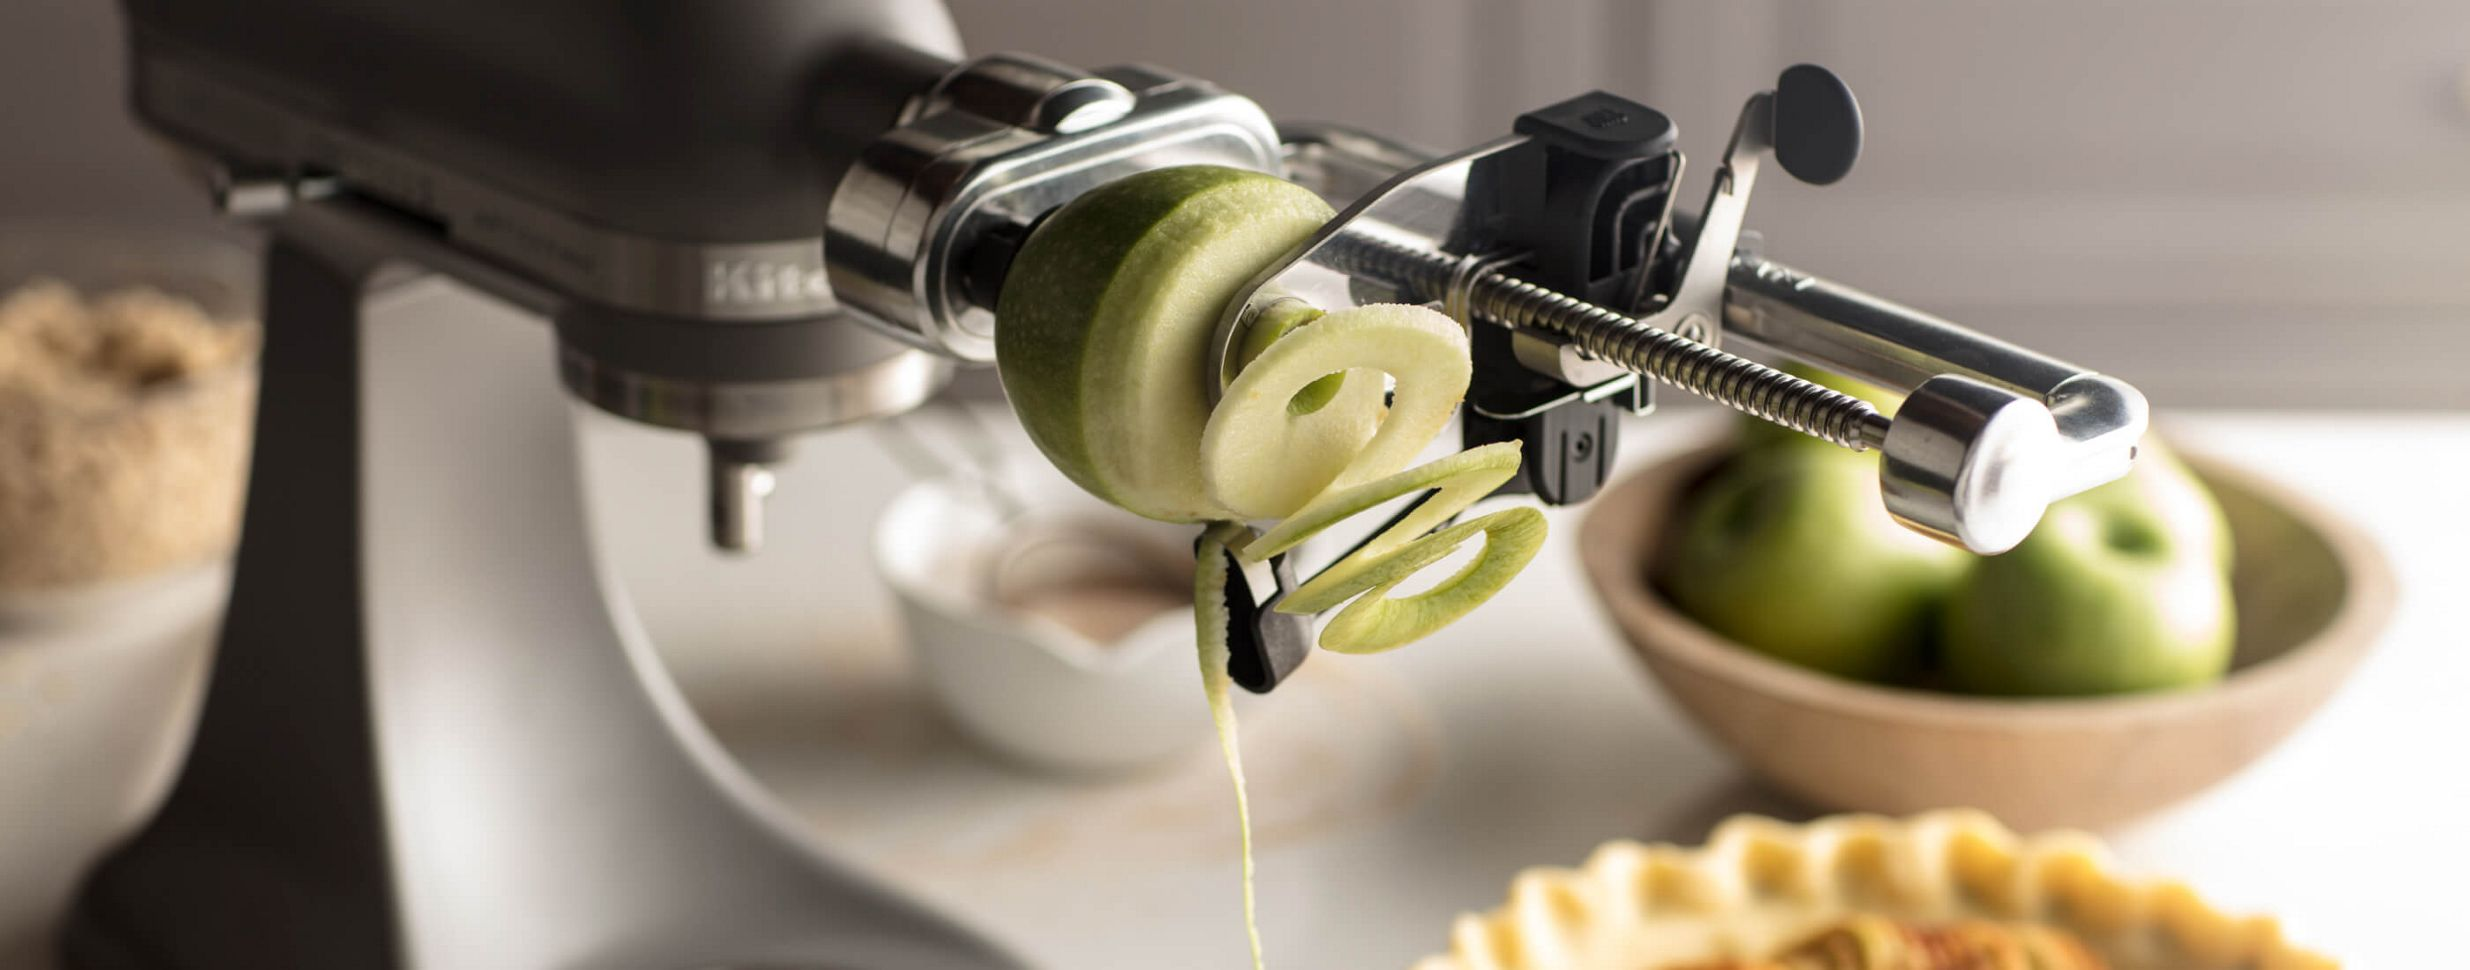 A Black Matte KitchenAid® Stand Mixer with a Spiralizer attachment holding a green apple.